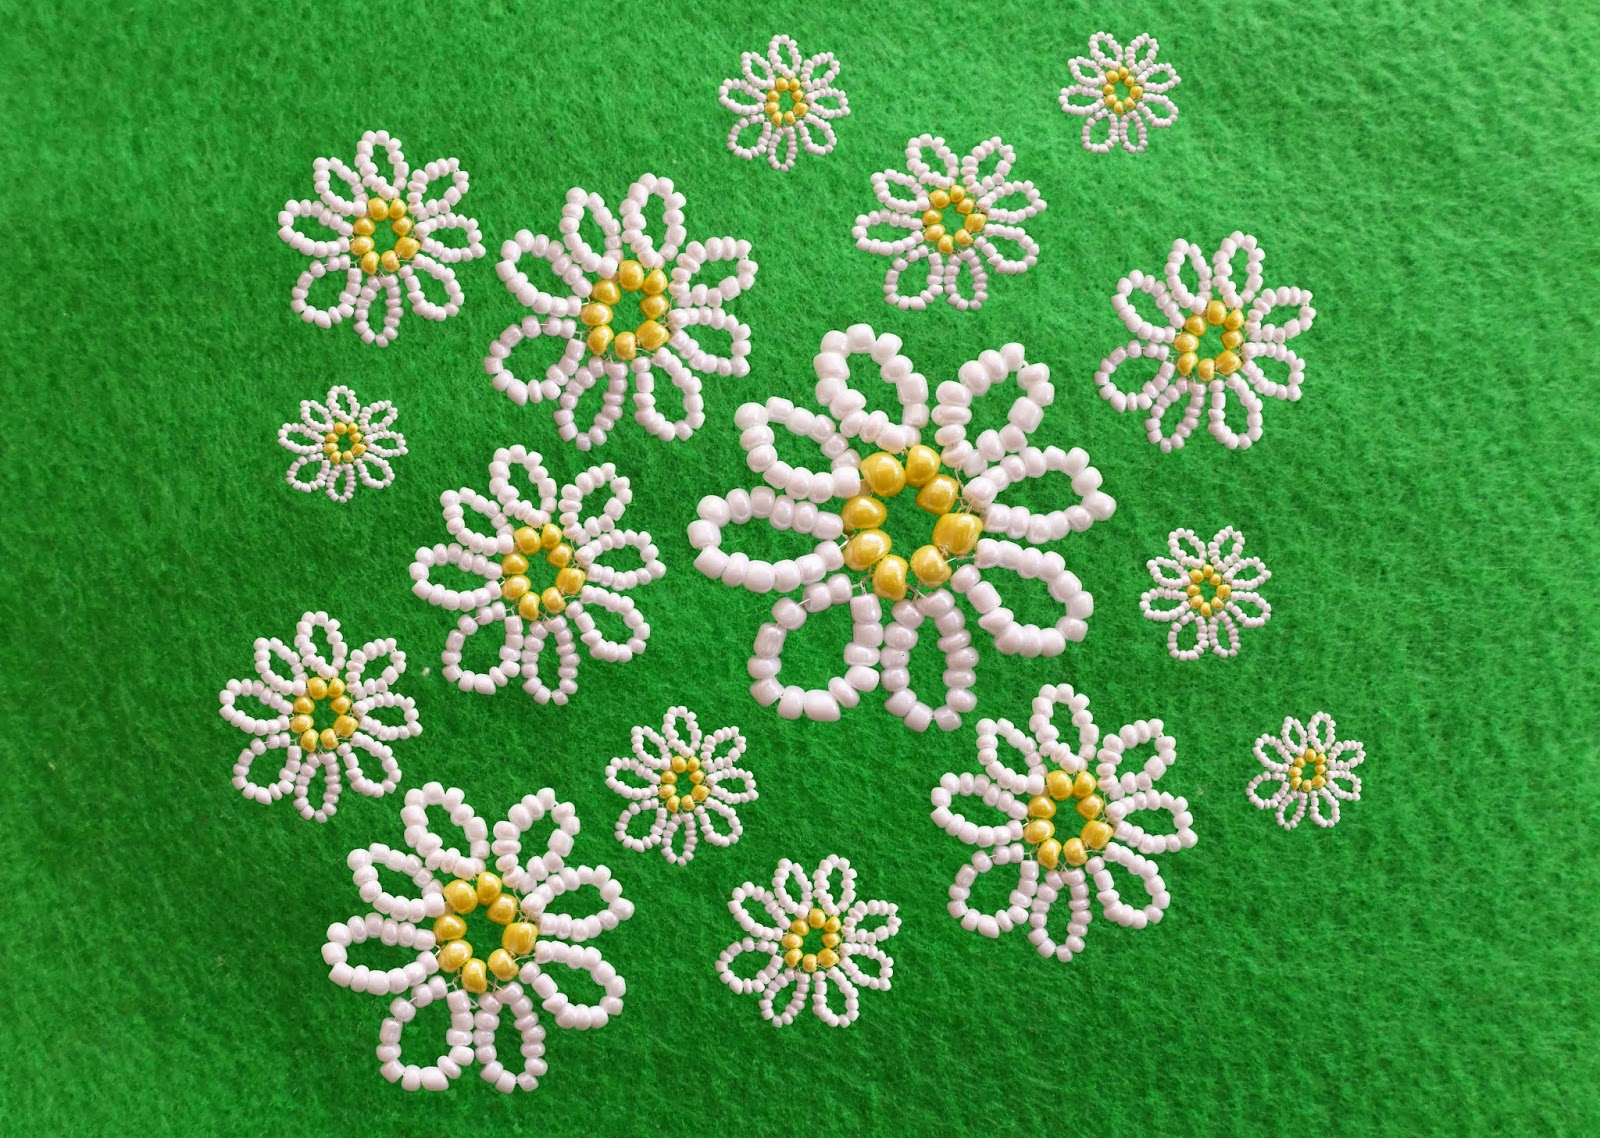 daisy motif with beads